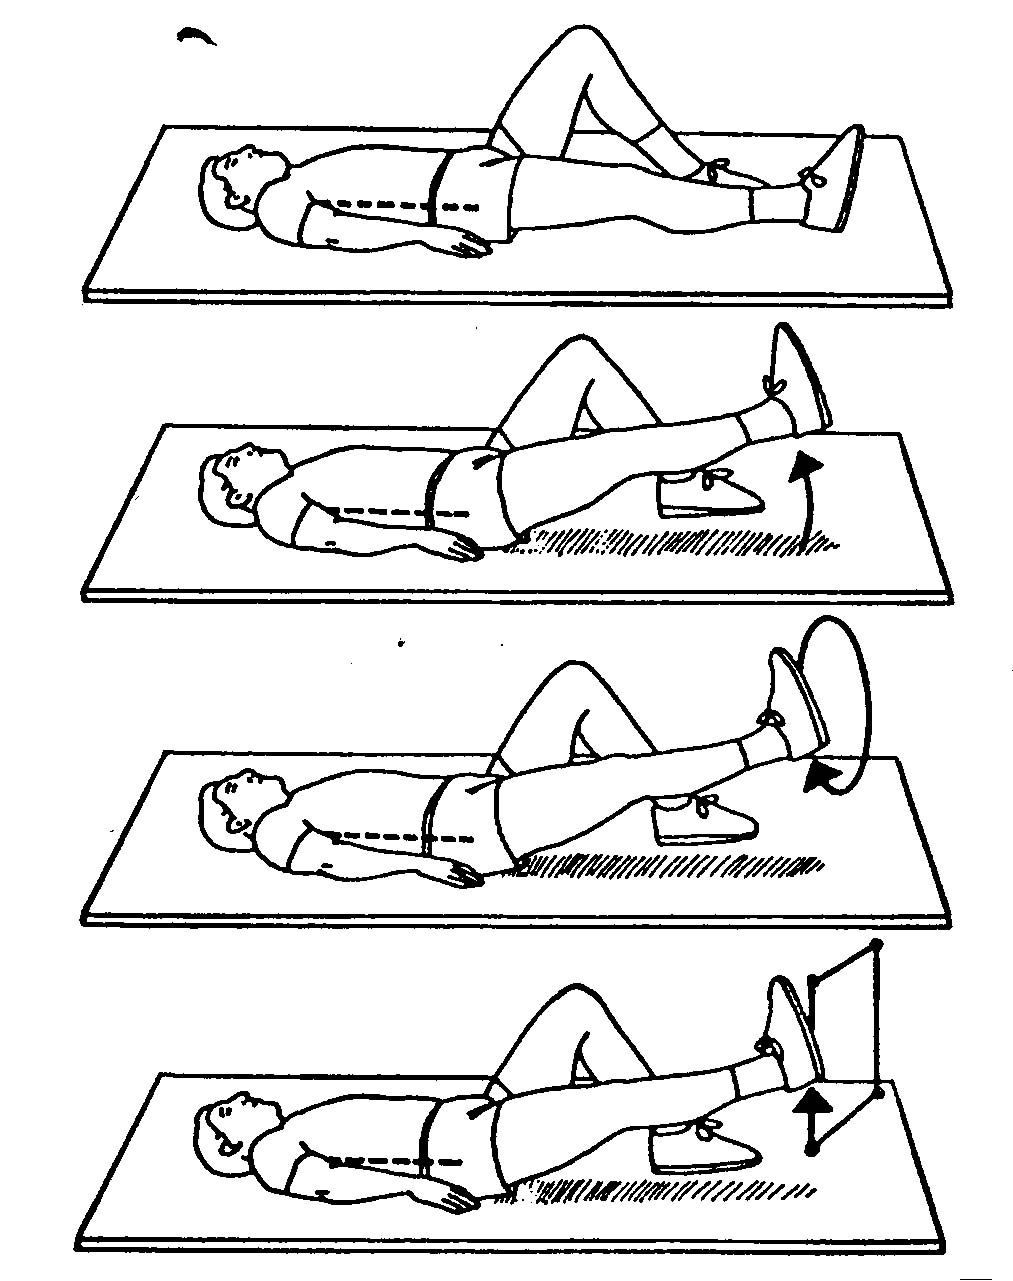 Acute low back pain and physical therapy - Physical Therapy Corner Low Back Pain And Lumbar Stabilization Exercises